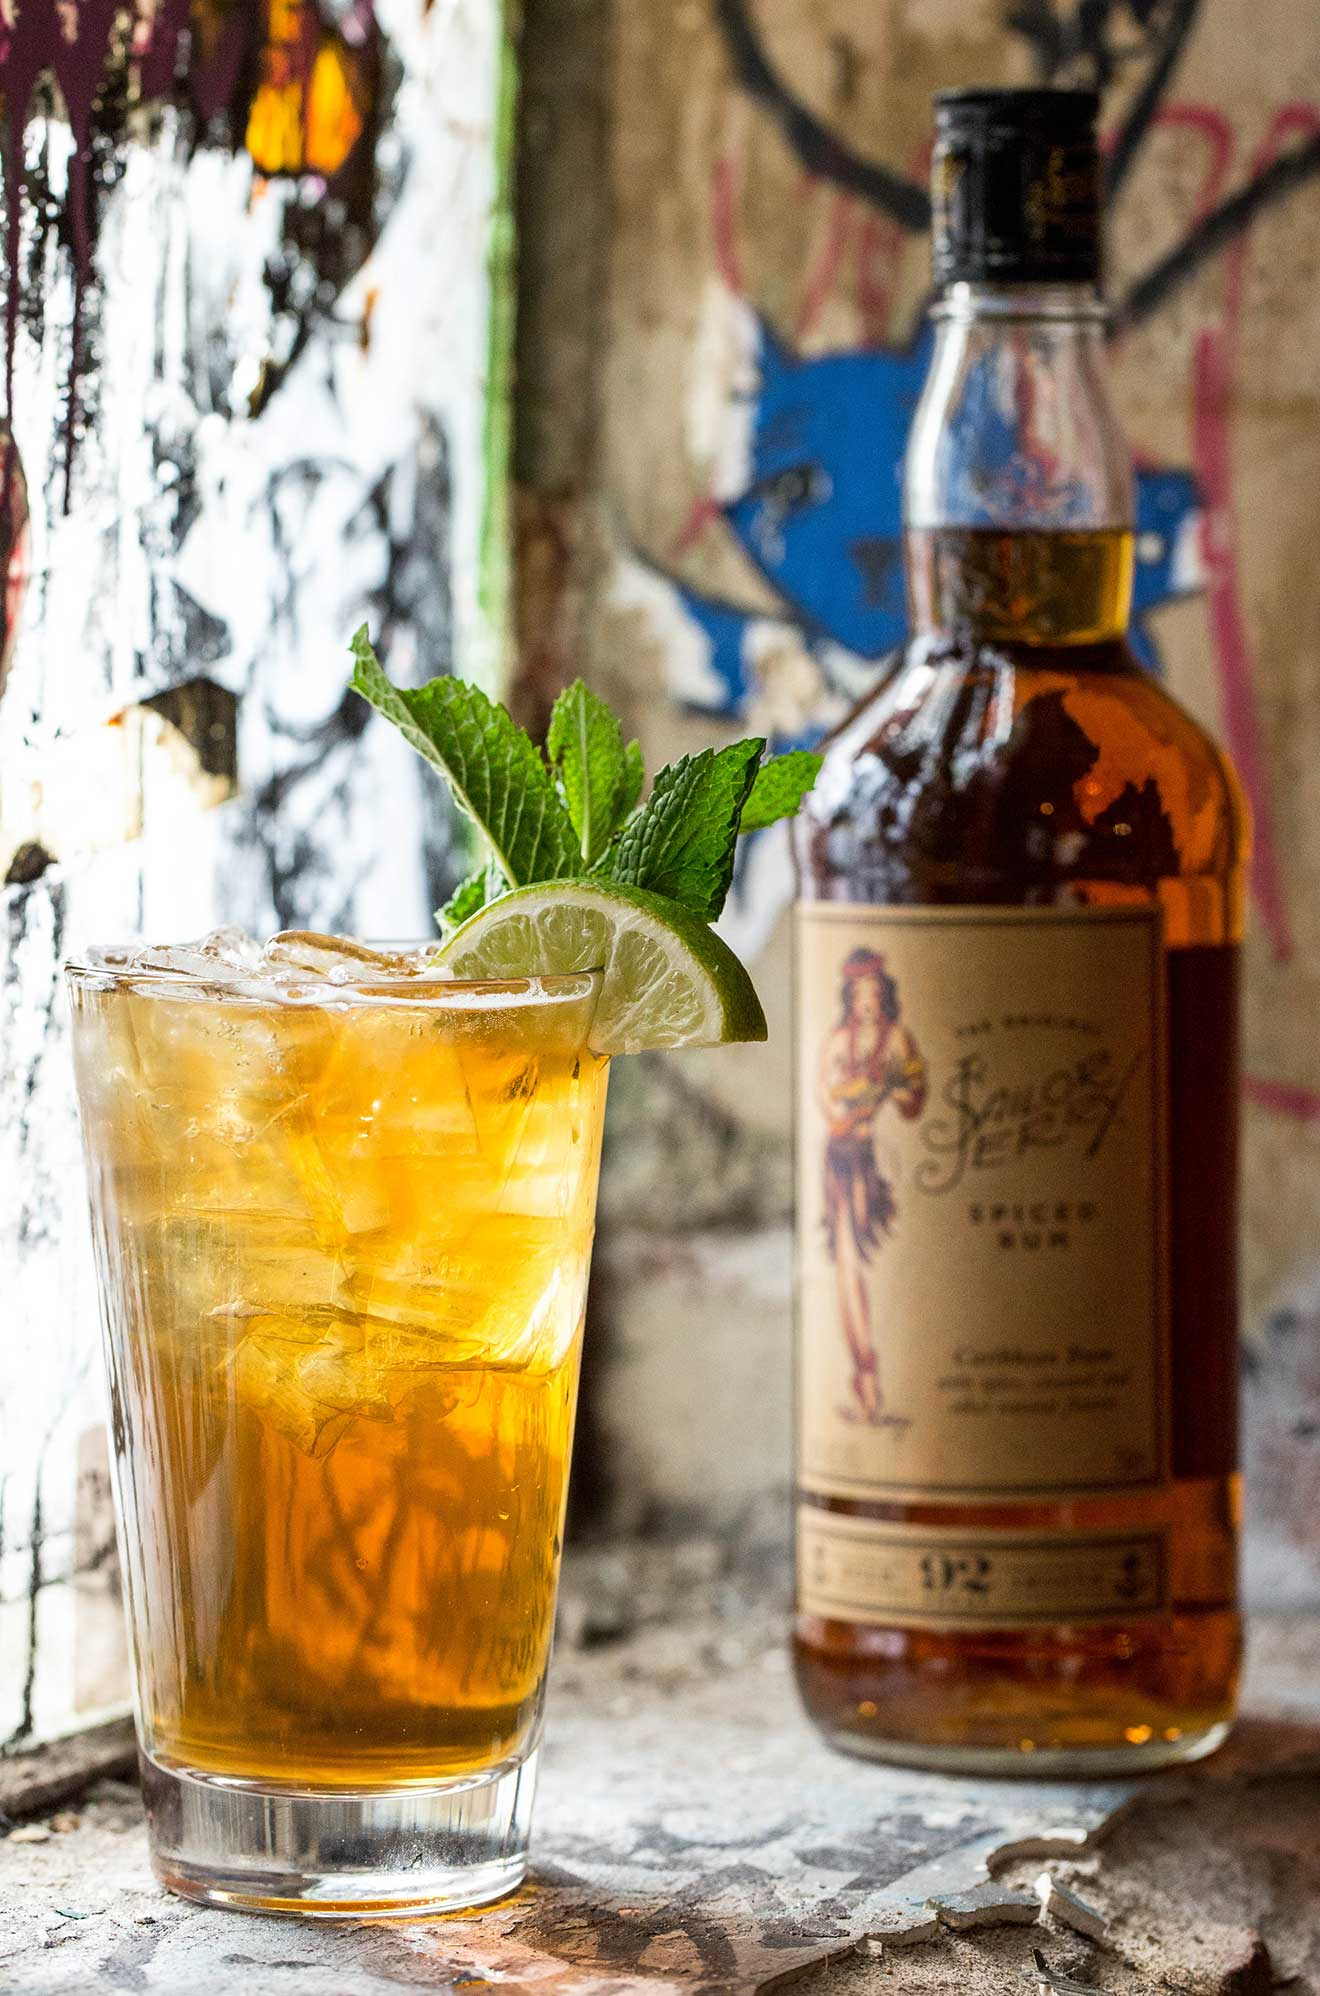 Throw Shade cocktail made with Sailor Jerry Rum